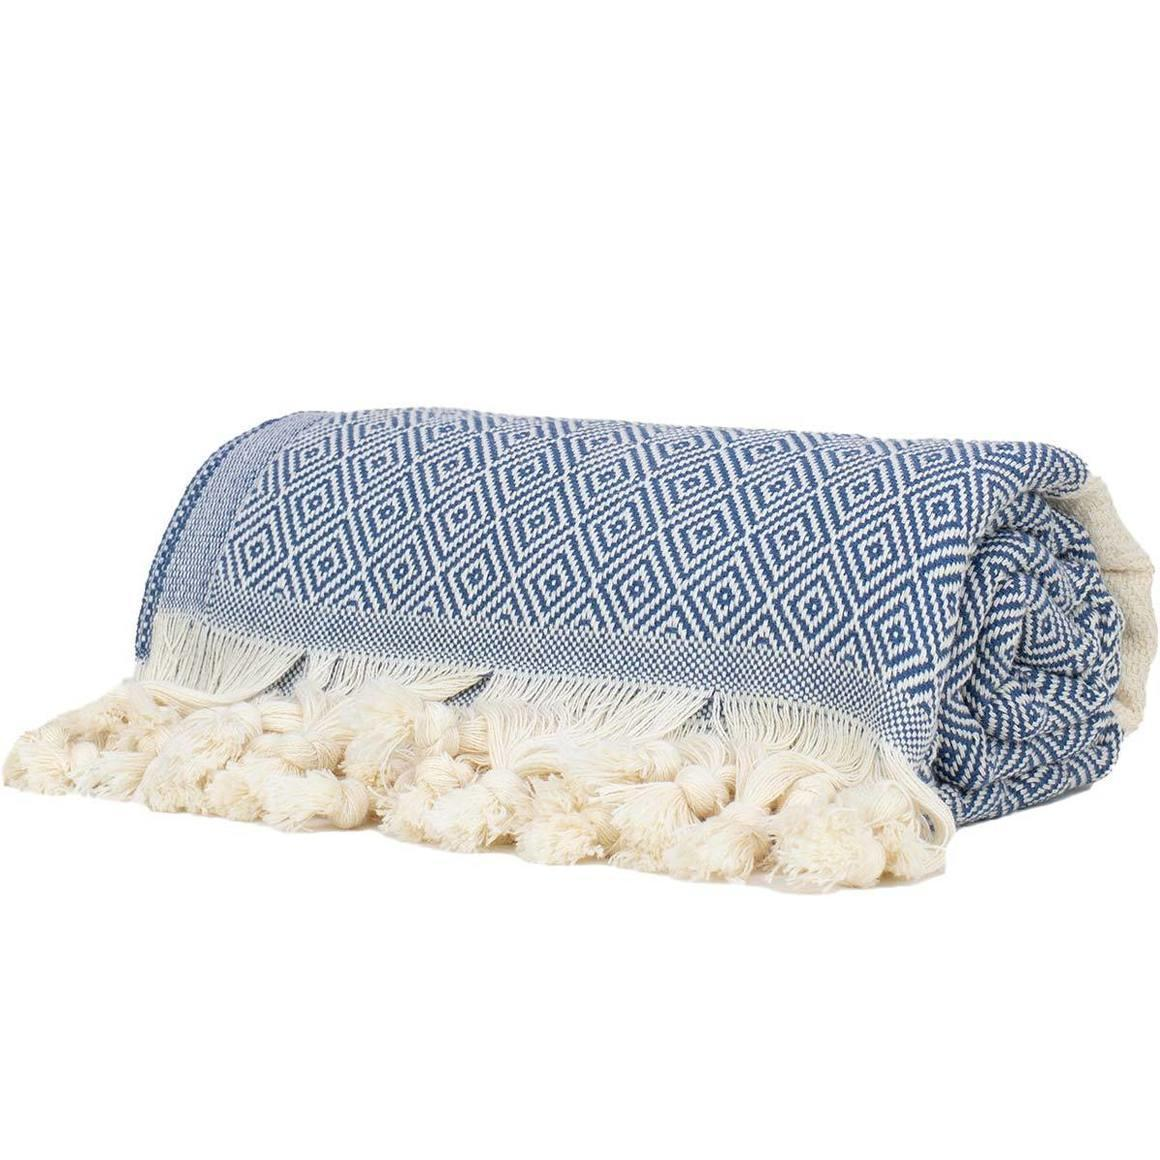 NAVY AND WHITE TURKISH TOWEL - THICK | Trada Marketplace